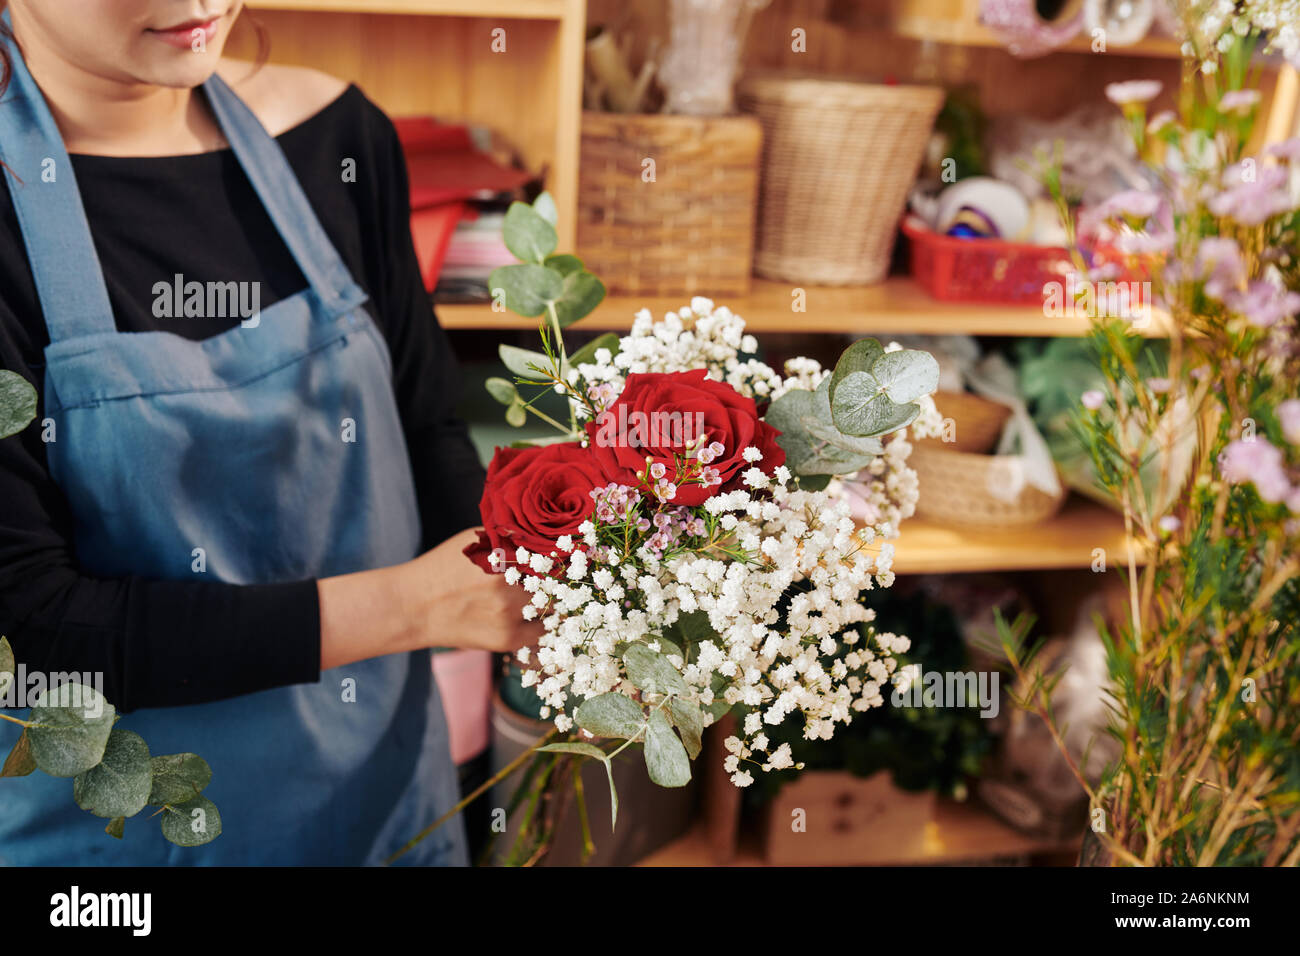 Female Florist Showing Beautiful Bouquet With Red Roses Gypsophila And Eucalyptus Stock Photo Alamy